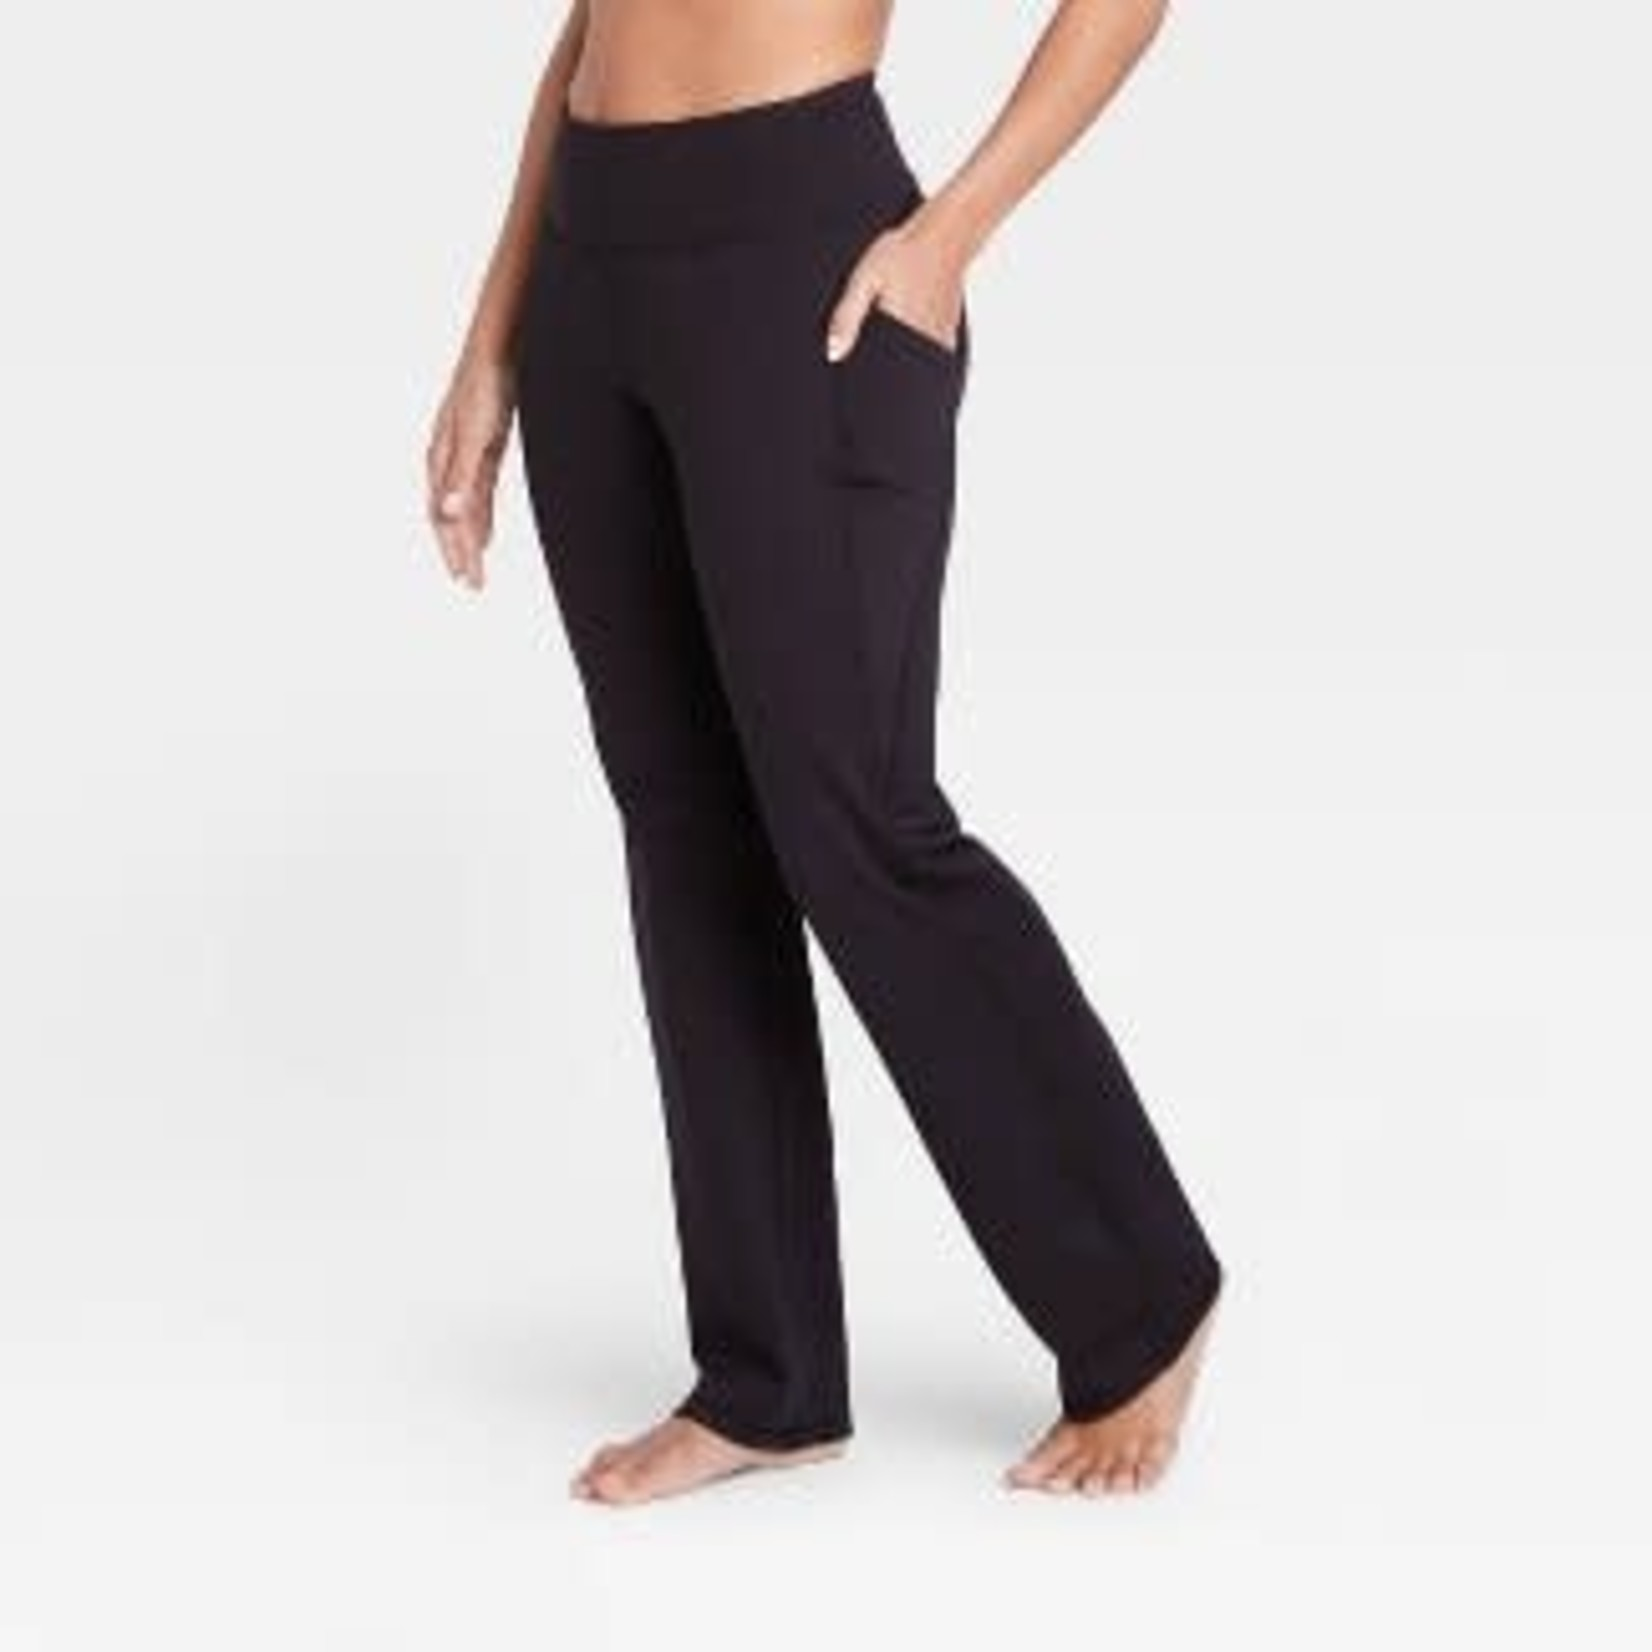 All in Motion   Women's Contour Curvy High-Waisted Straight Leg Pants with Power Waist-XL